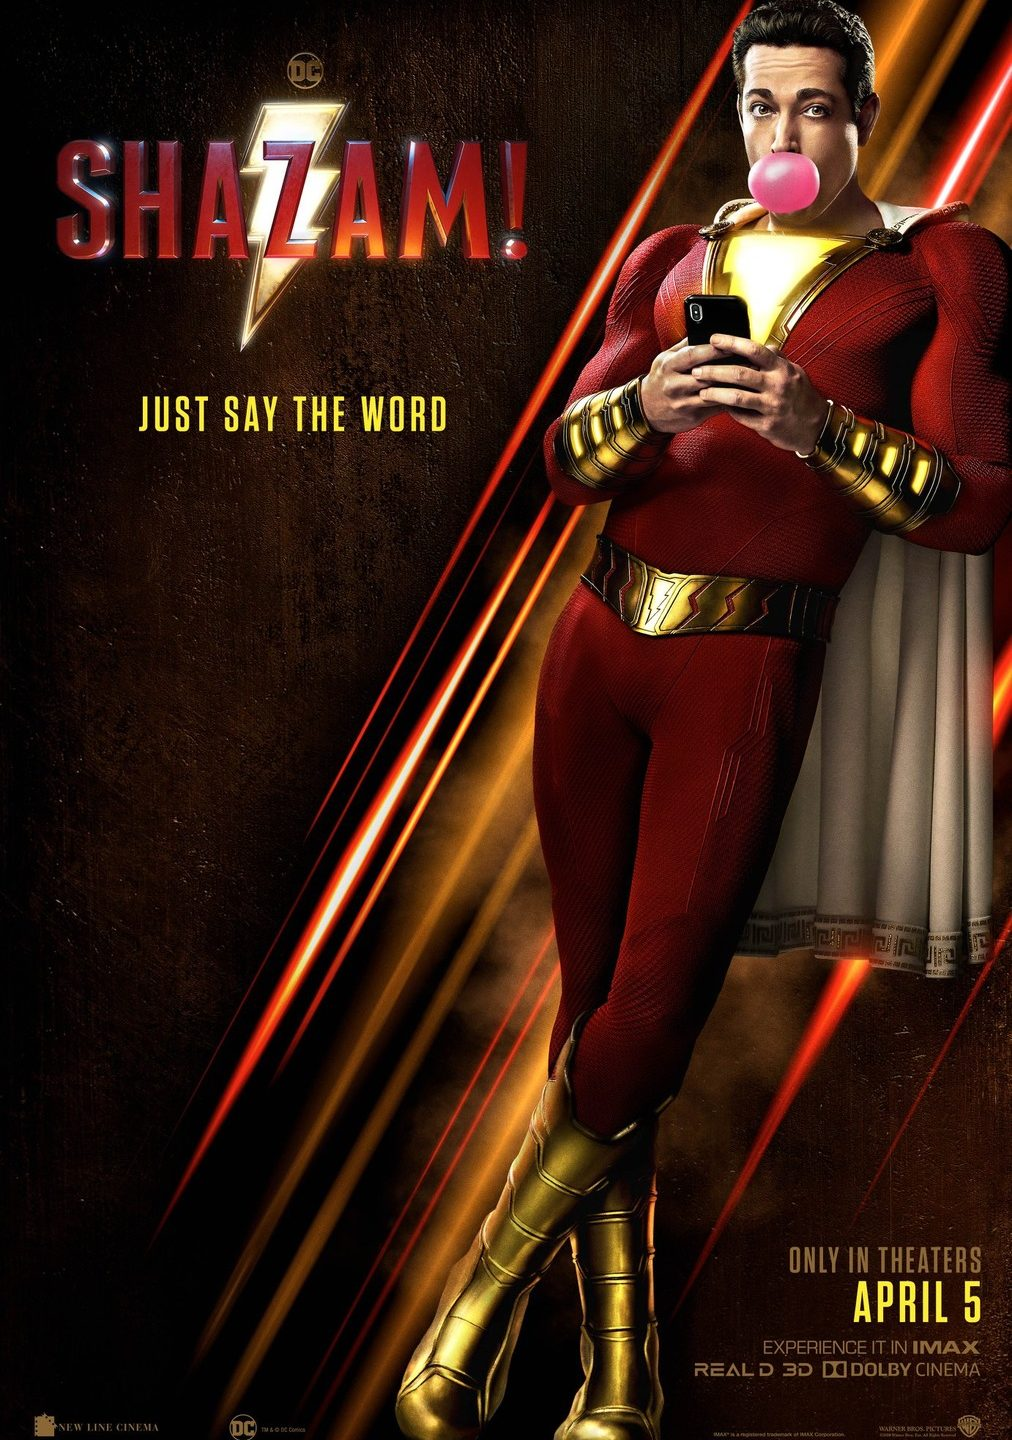 Stand the chance to win 2 tickets to see Shazam!